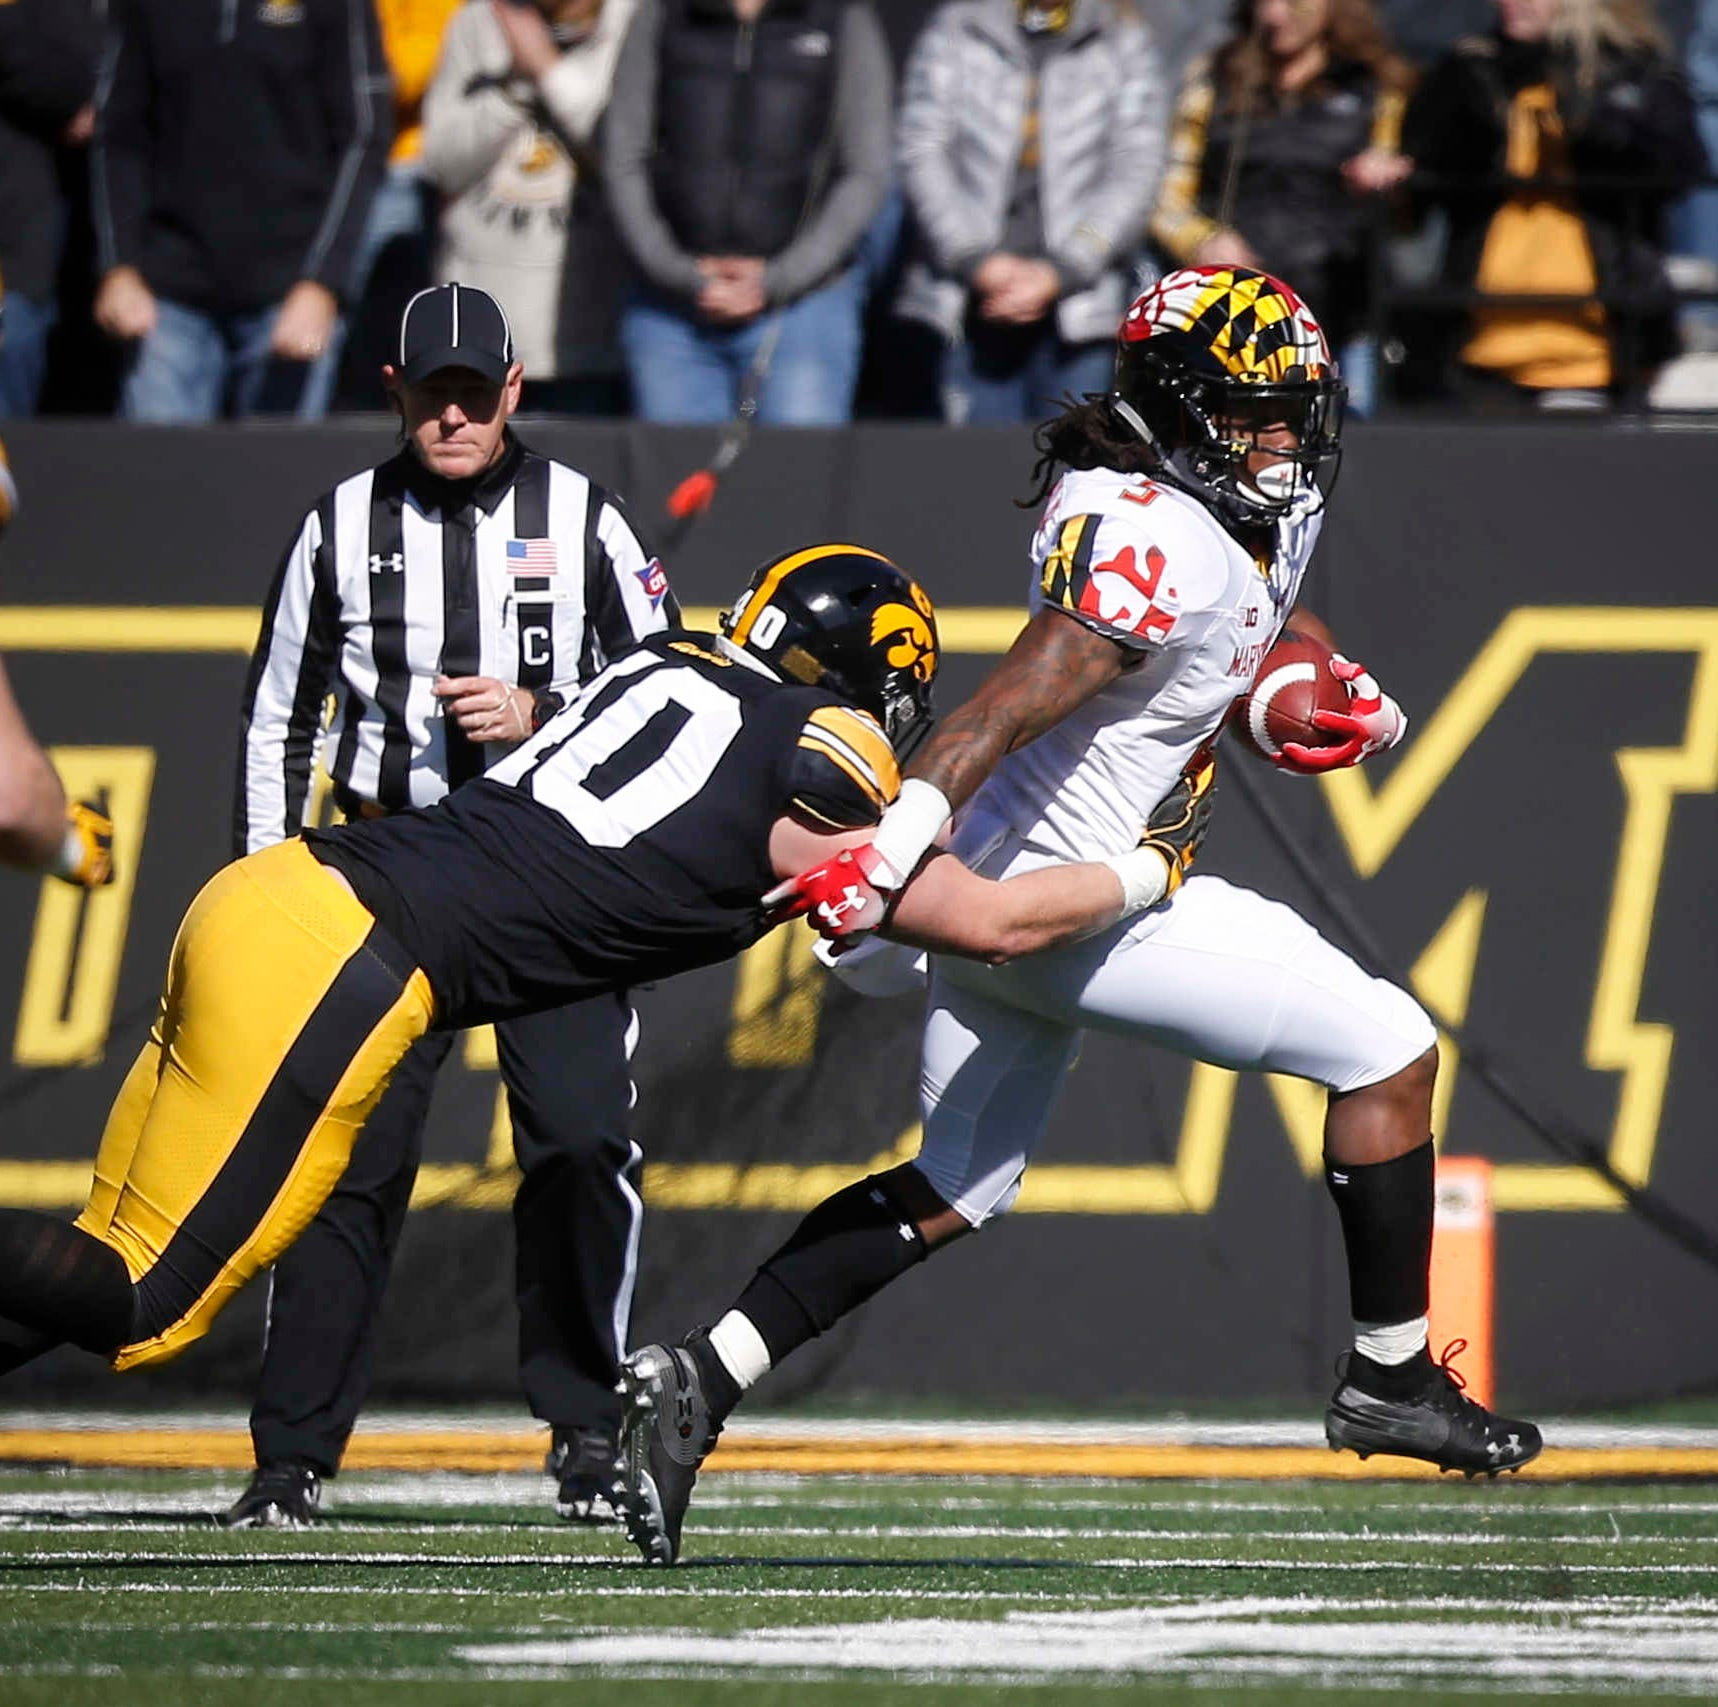 Iowa defense is flawless to keep Maryland 'jet' grounded